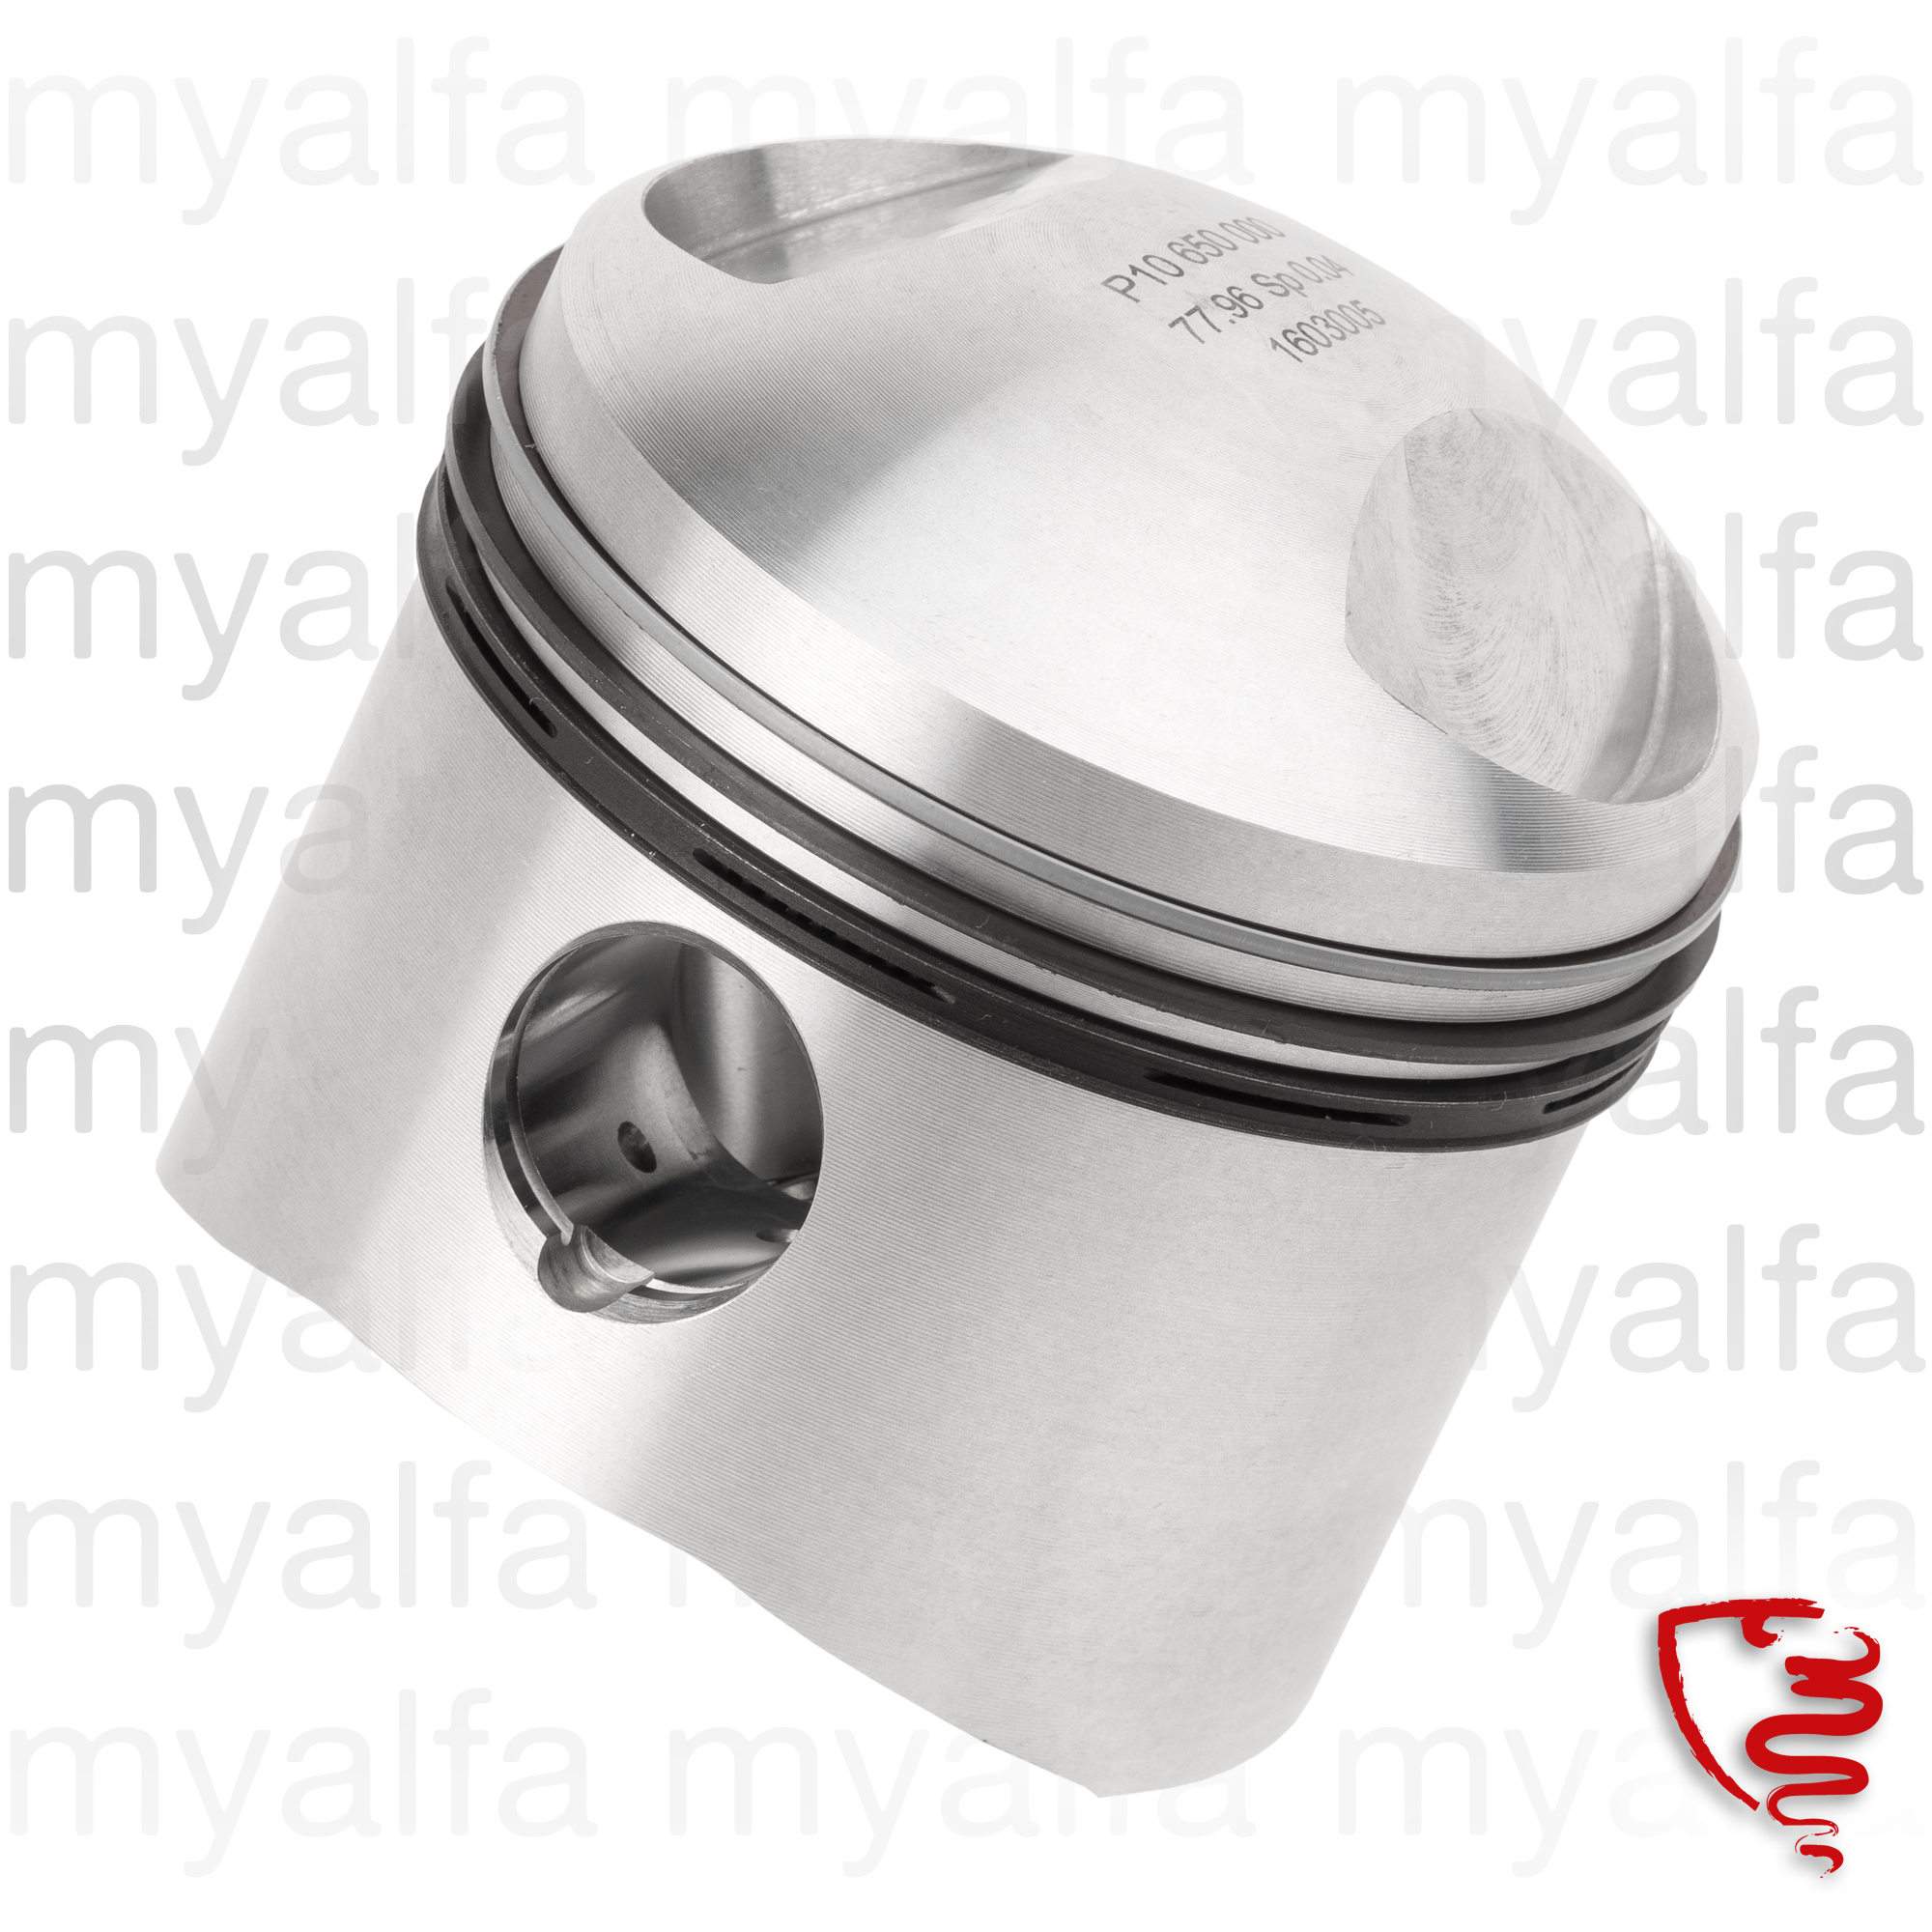 Shirts game, Pistons and segments GTV 1600 unit for 105/115, Engine, Engine Block, Piston/liner